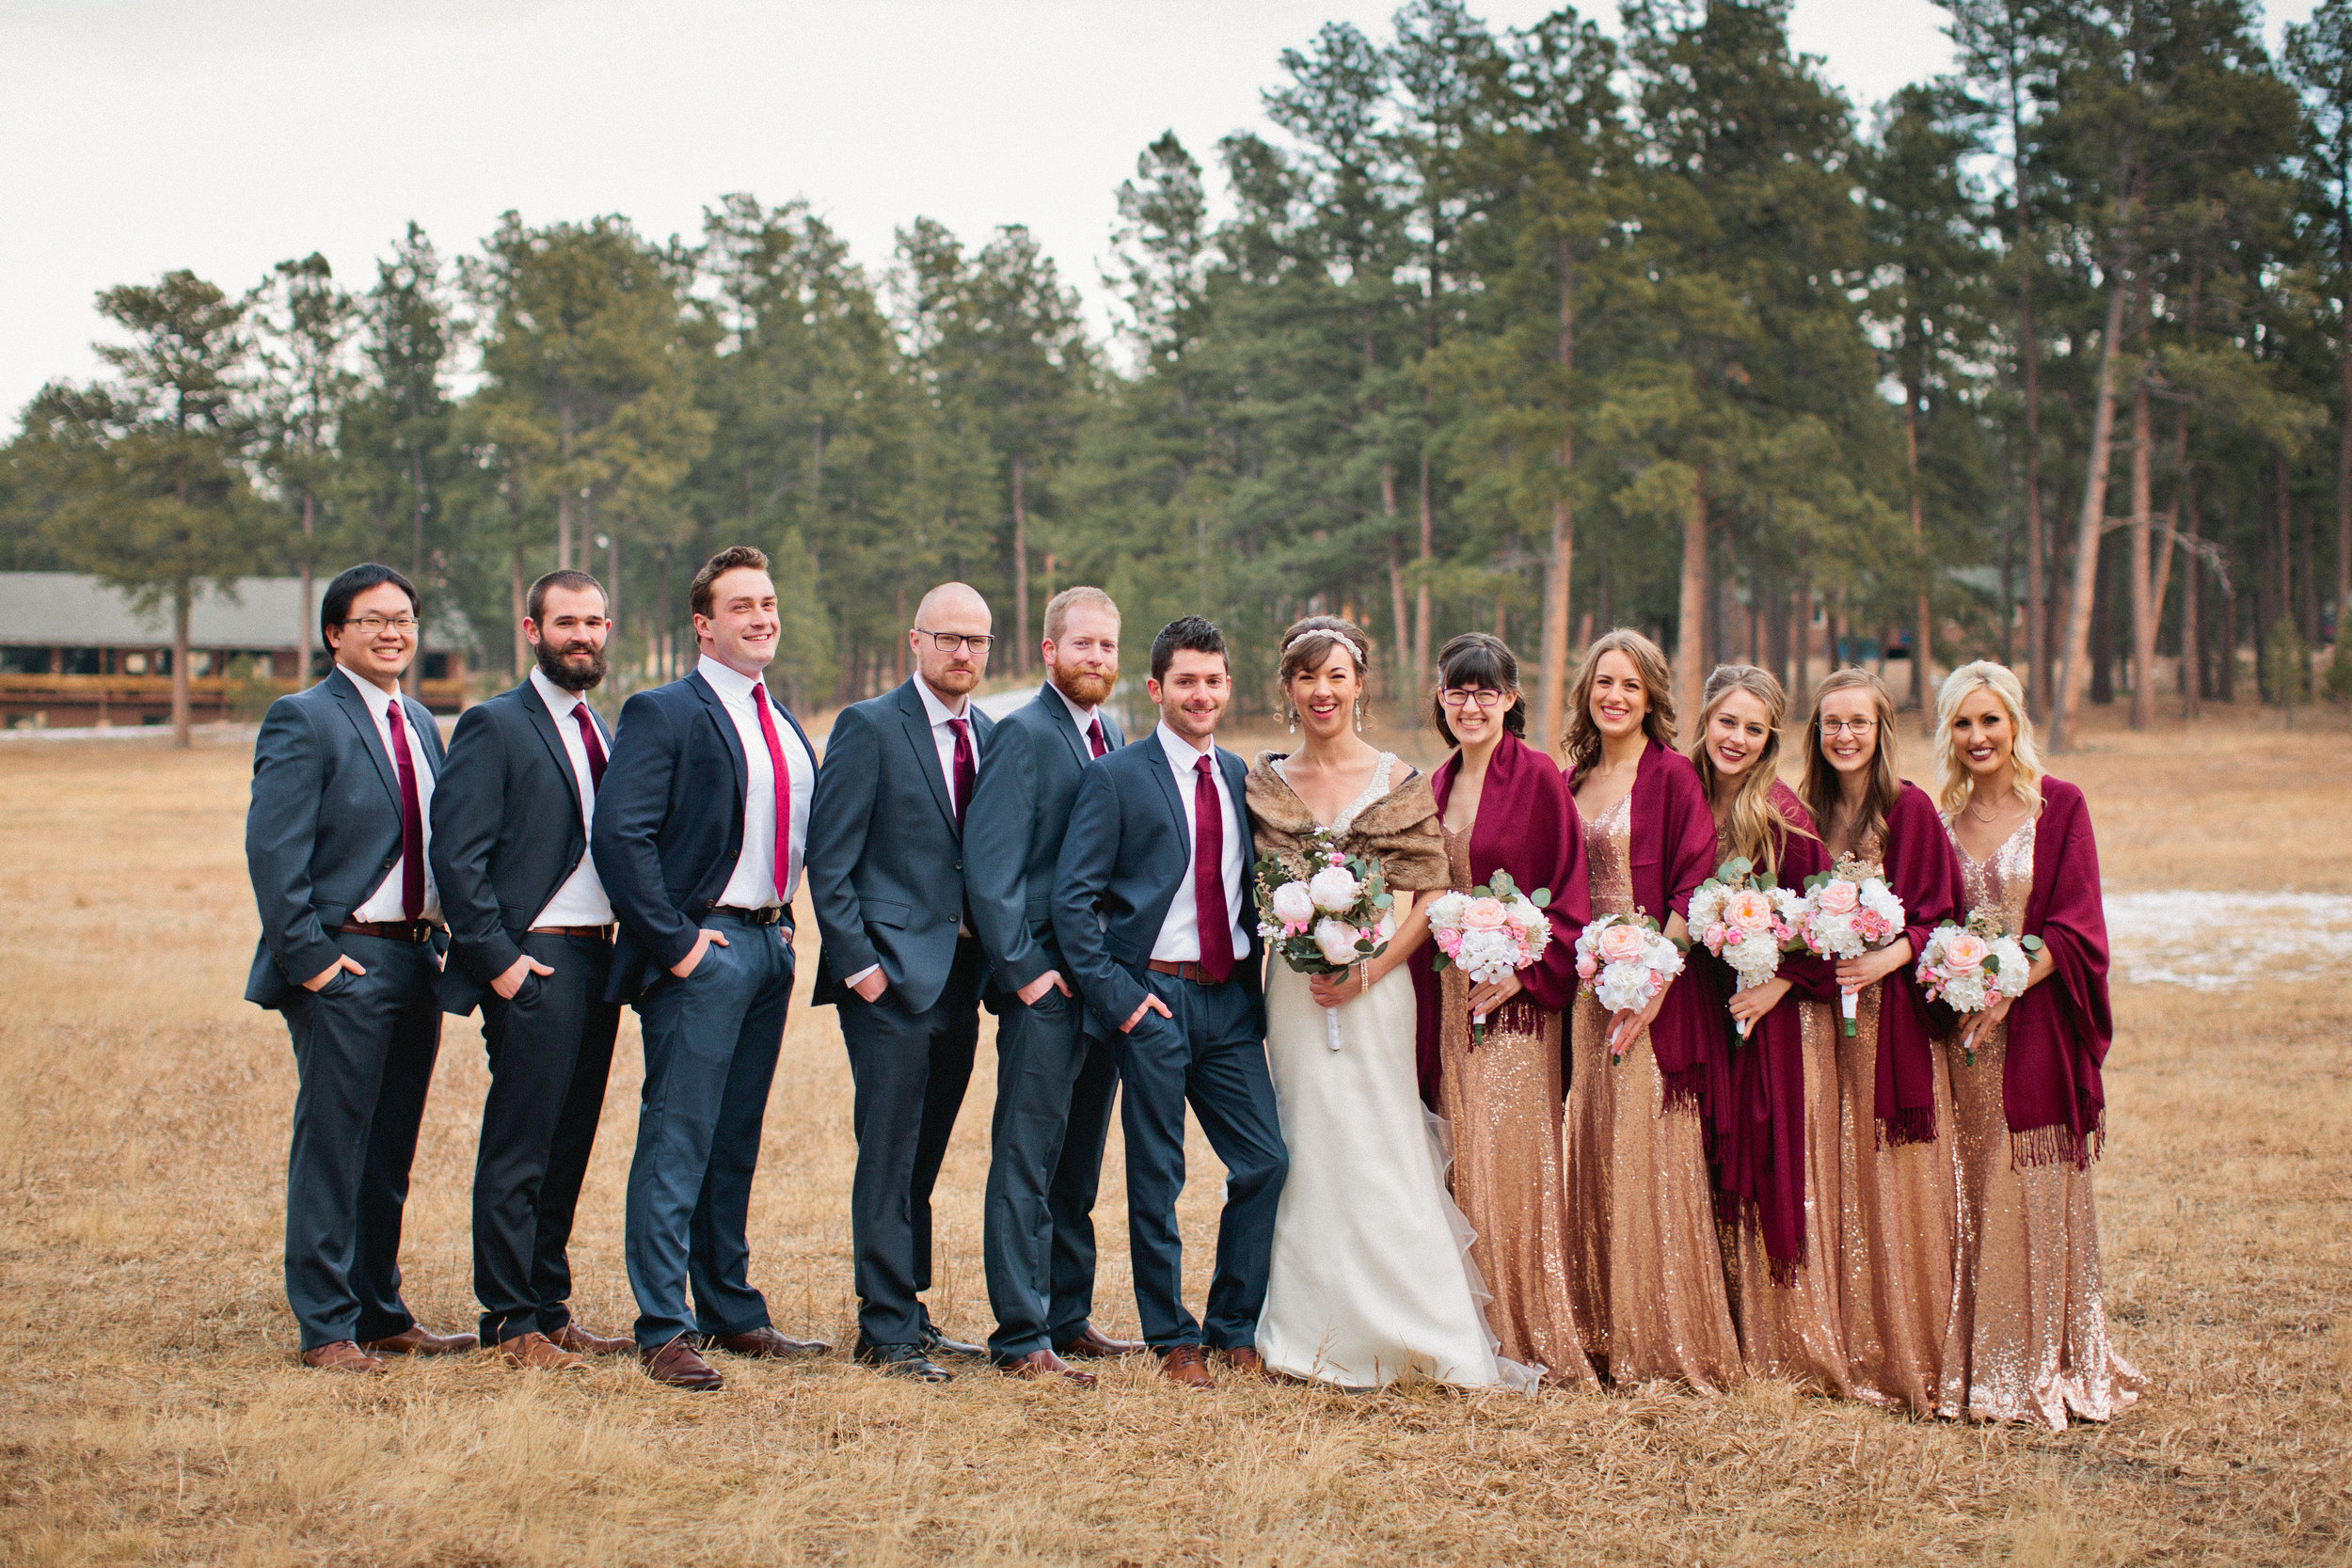 this is one of my favorite bridal party photos. I loved photographing at La Foret and would do it again in a heartbeat! The trees made a gorgeous backdrop and hints of snow reminded us that it was still December.